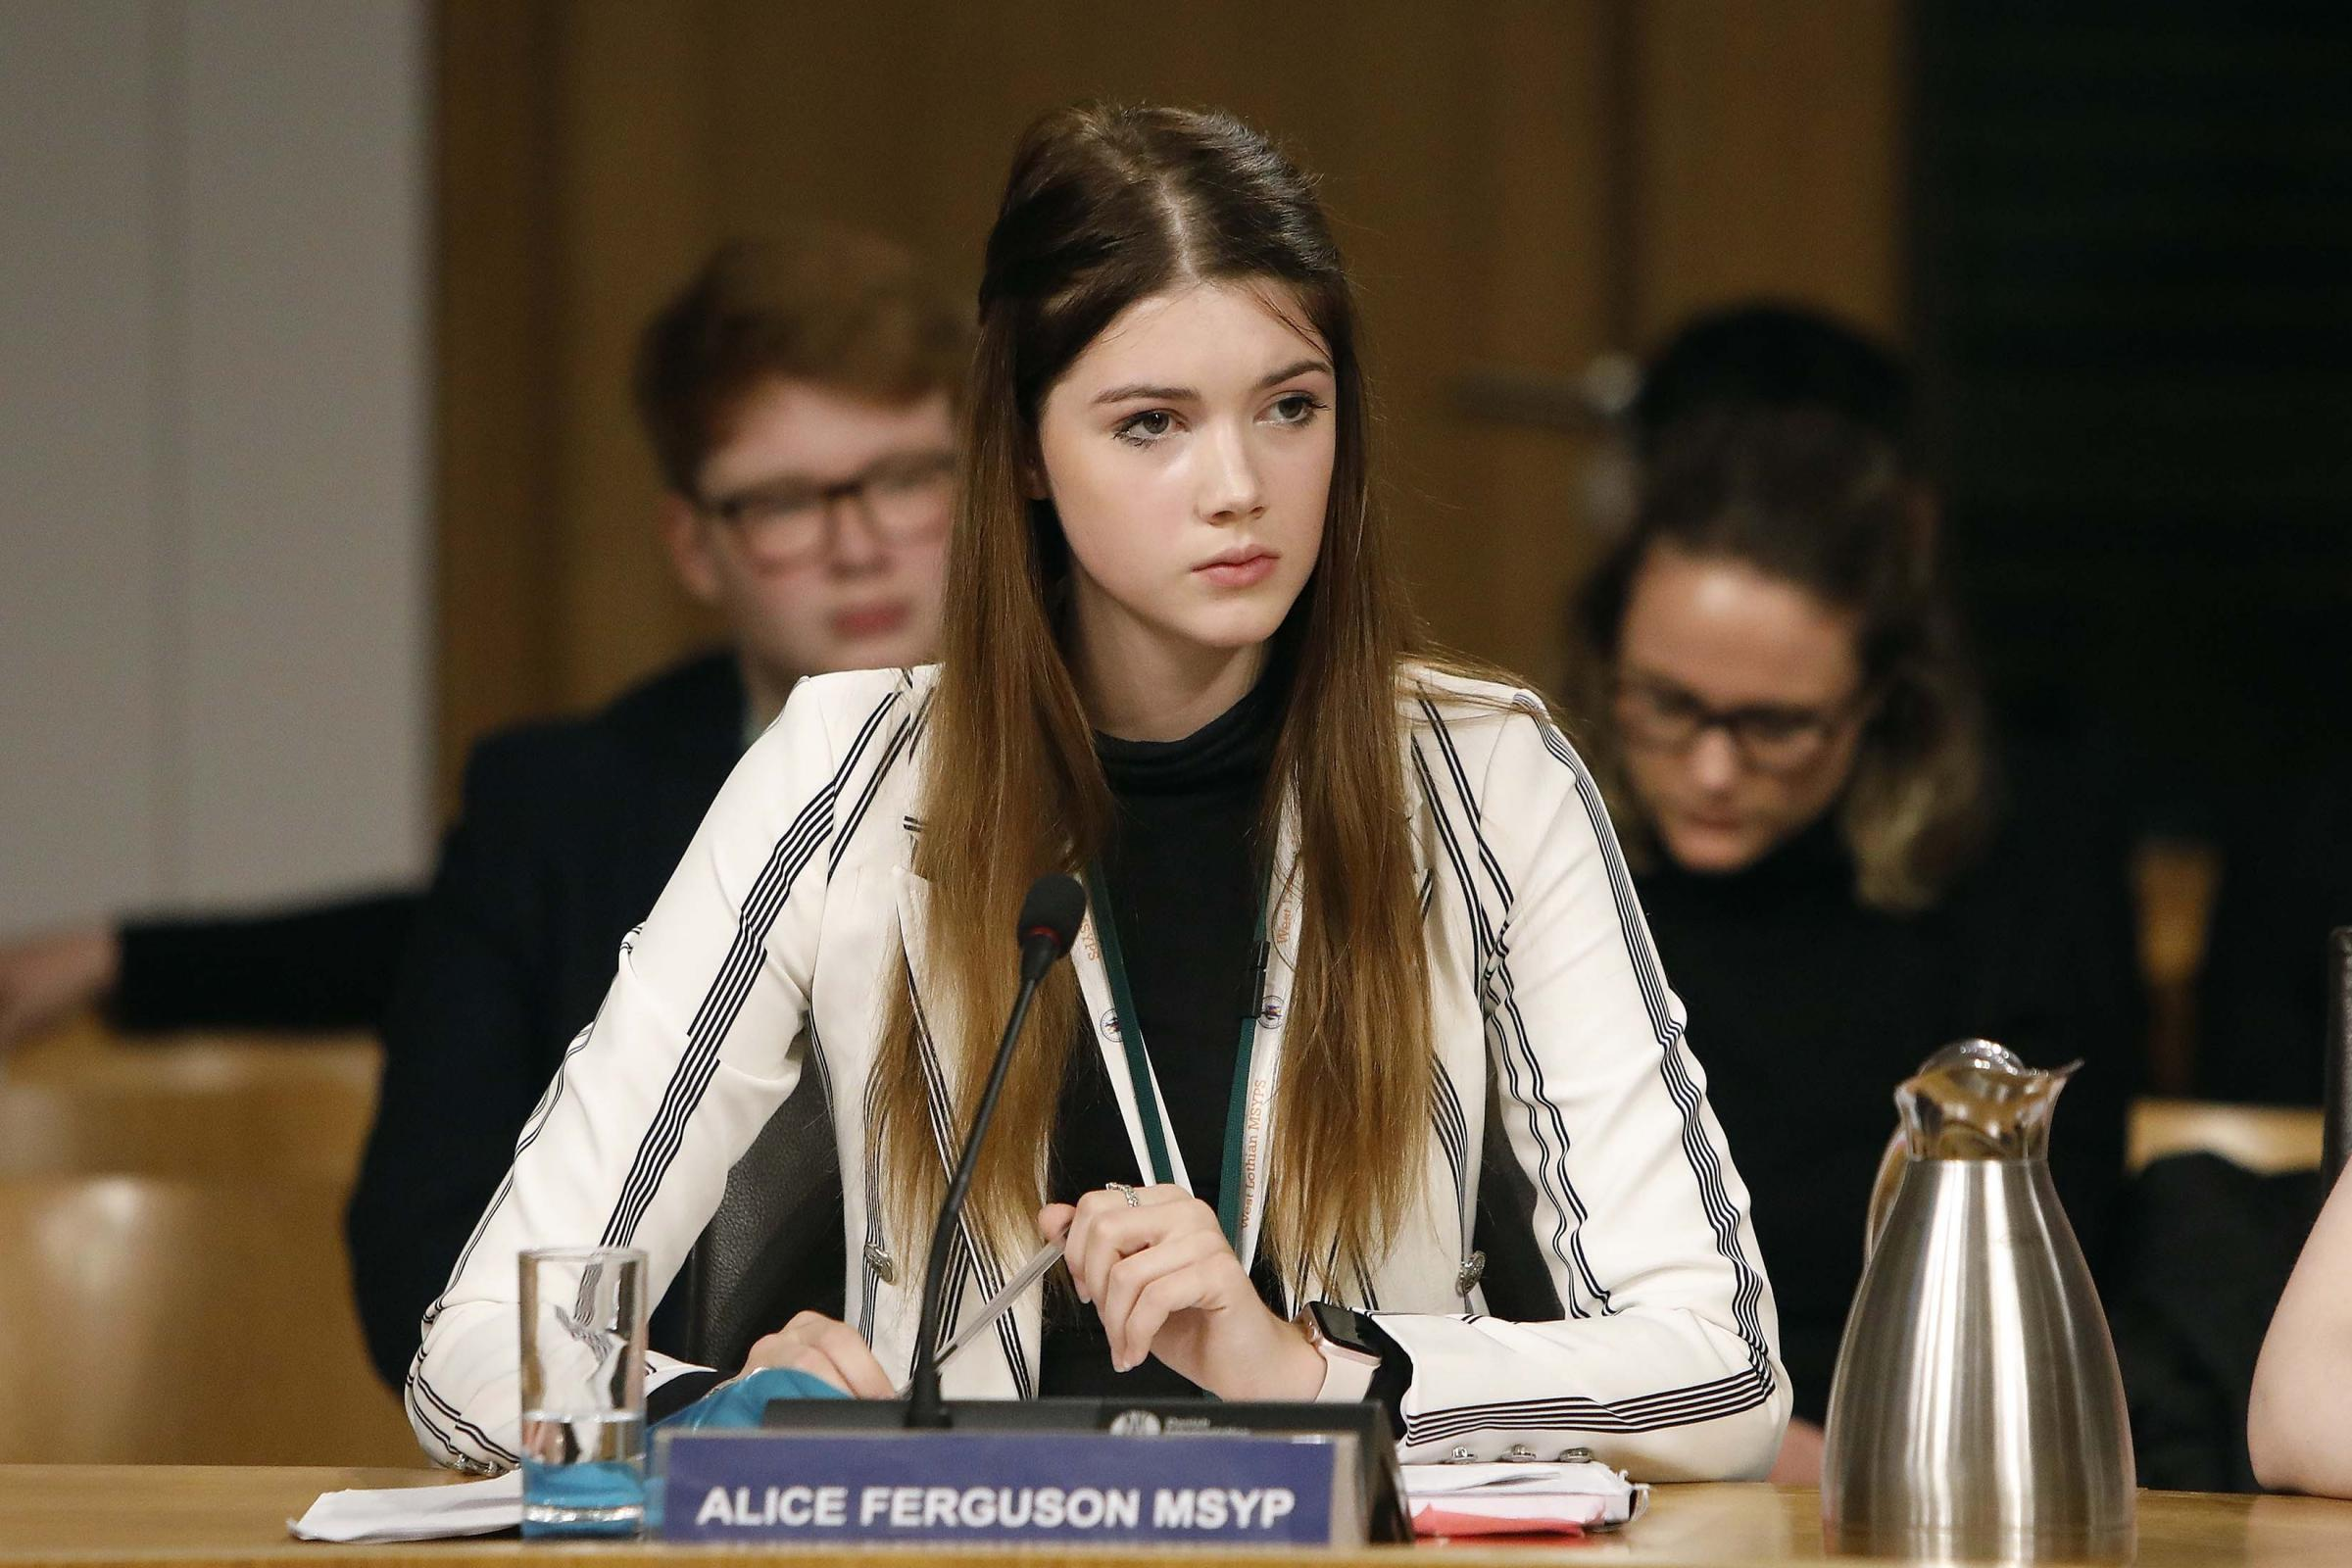 Alice Ferguson at the Scottish Parliament's education committee (Andrew Cowan/Scottish Parliament)